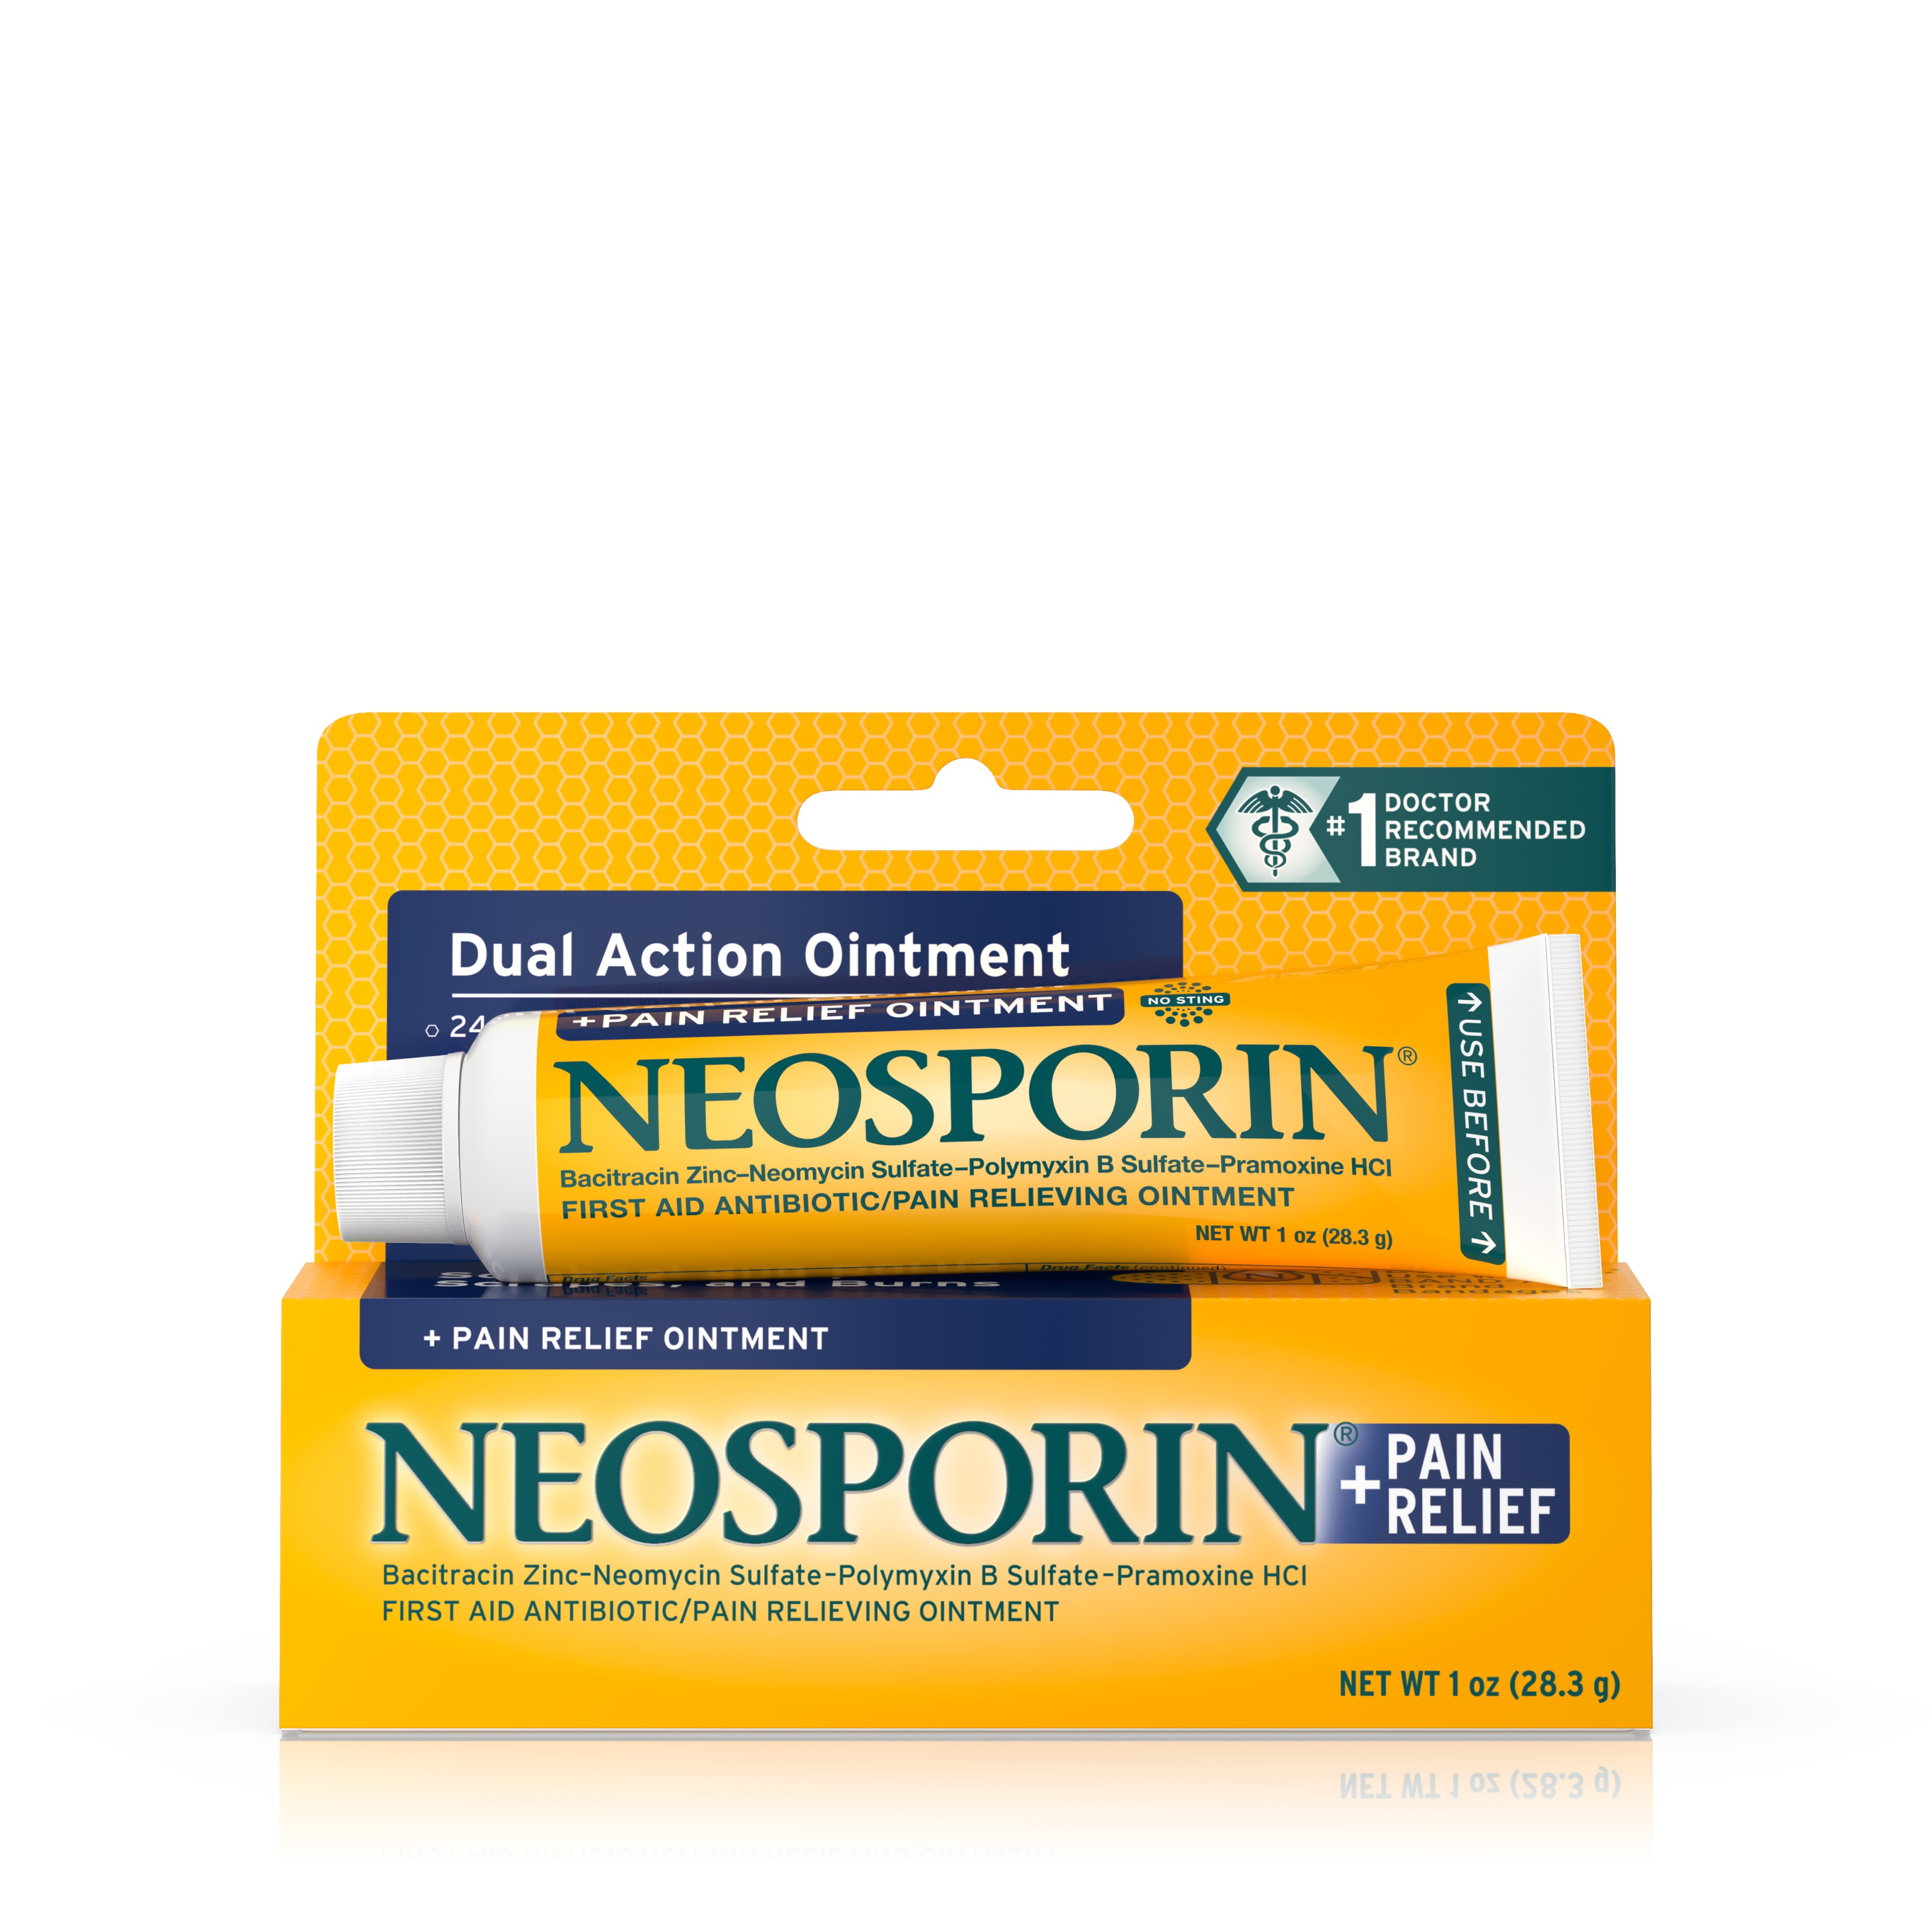 Neosporin + Pain Relief Dual Action Ointment, 1 Oz